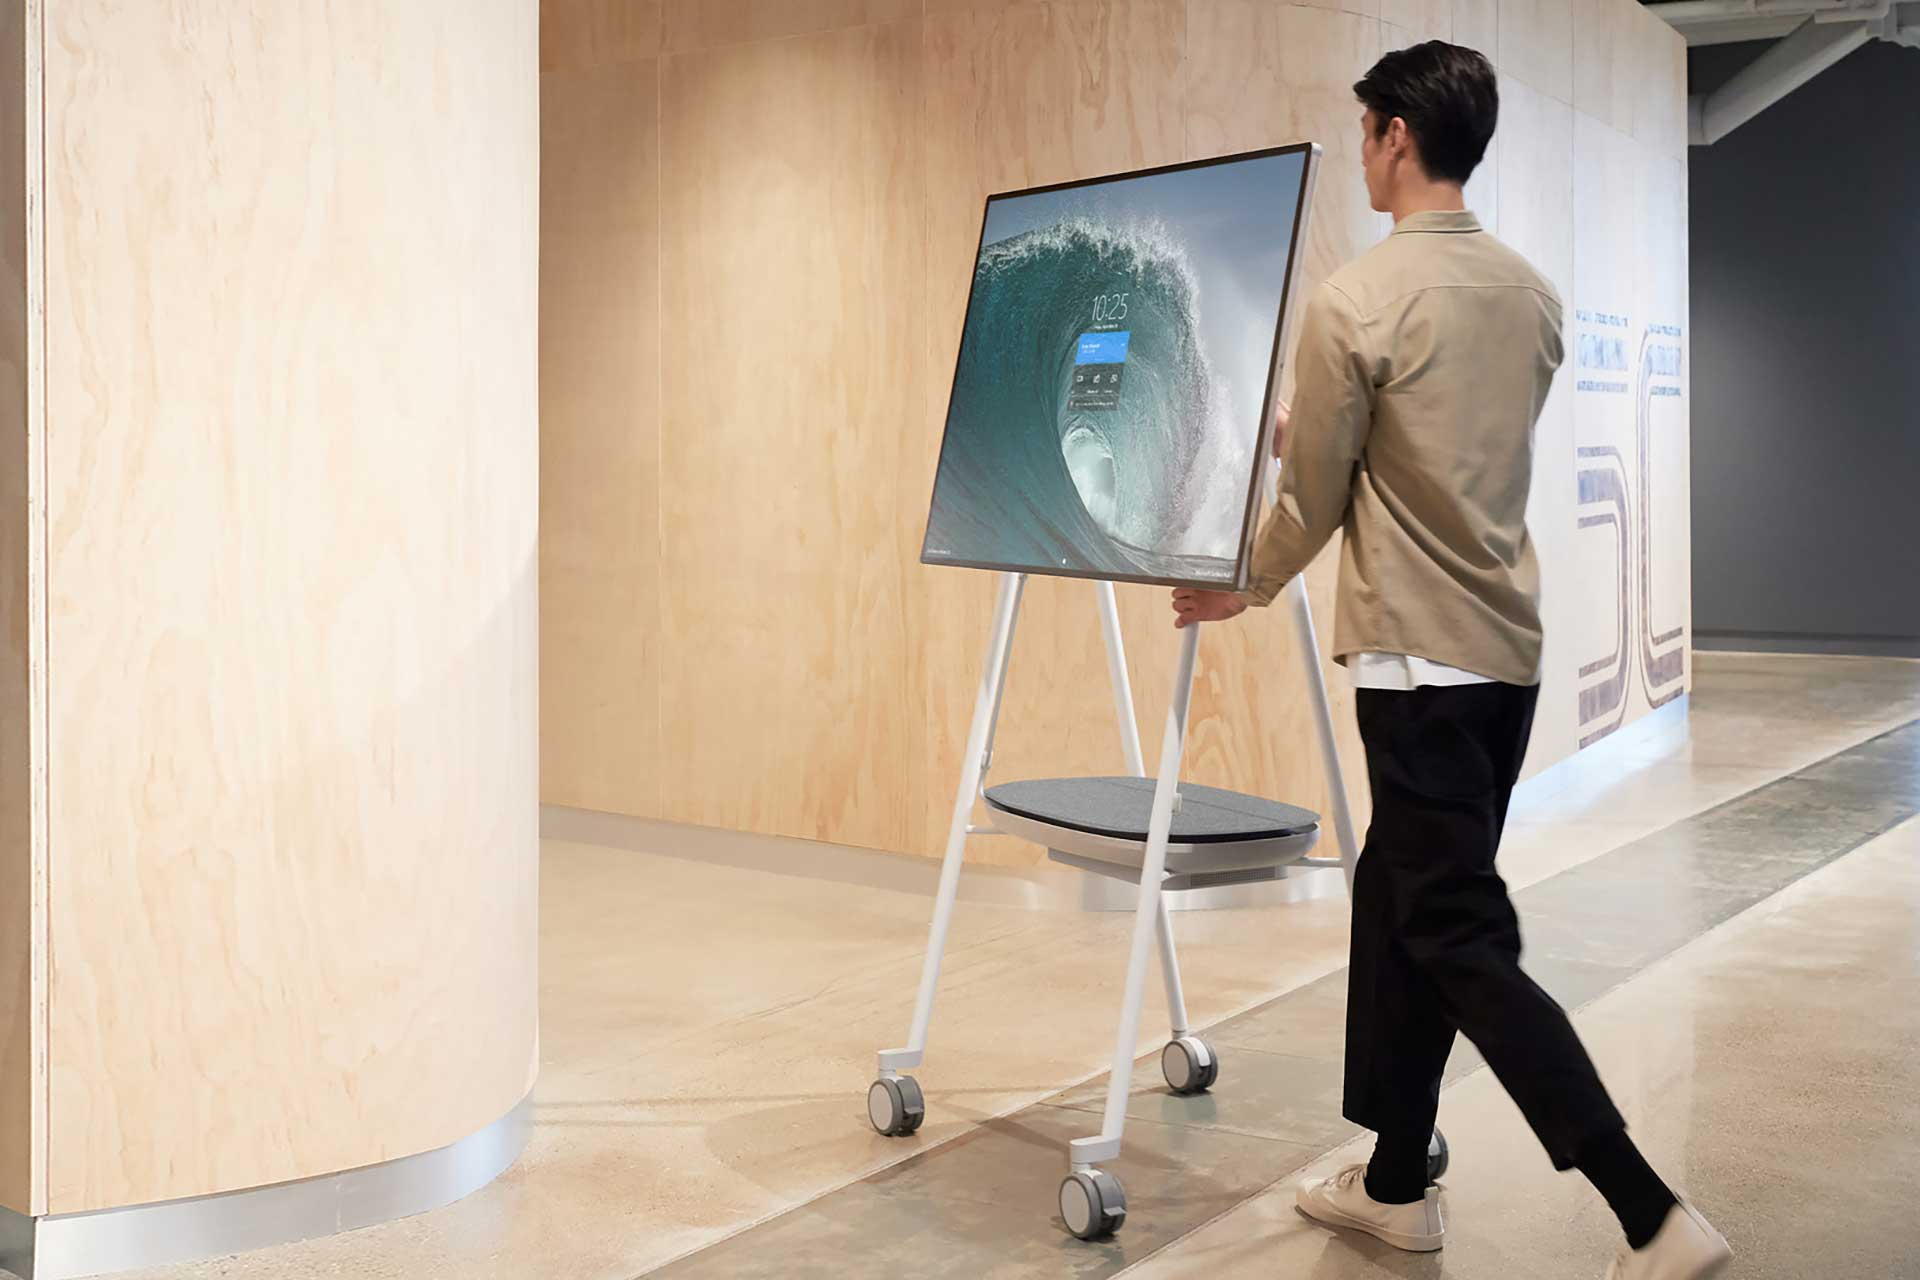 worker transports surface hub between rooms